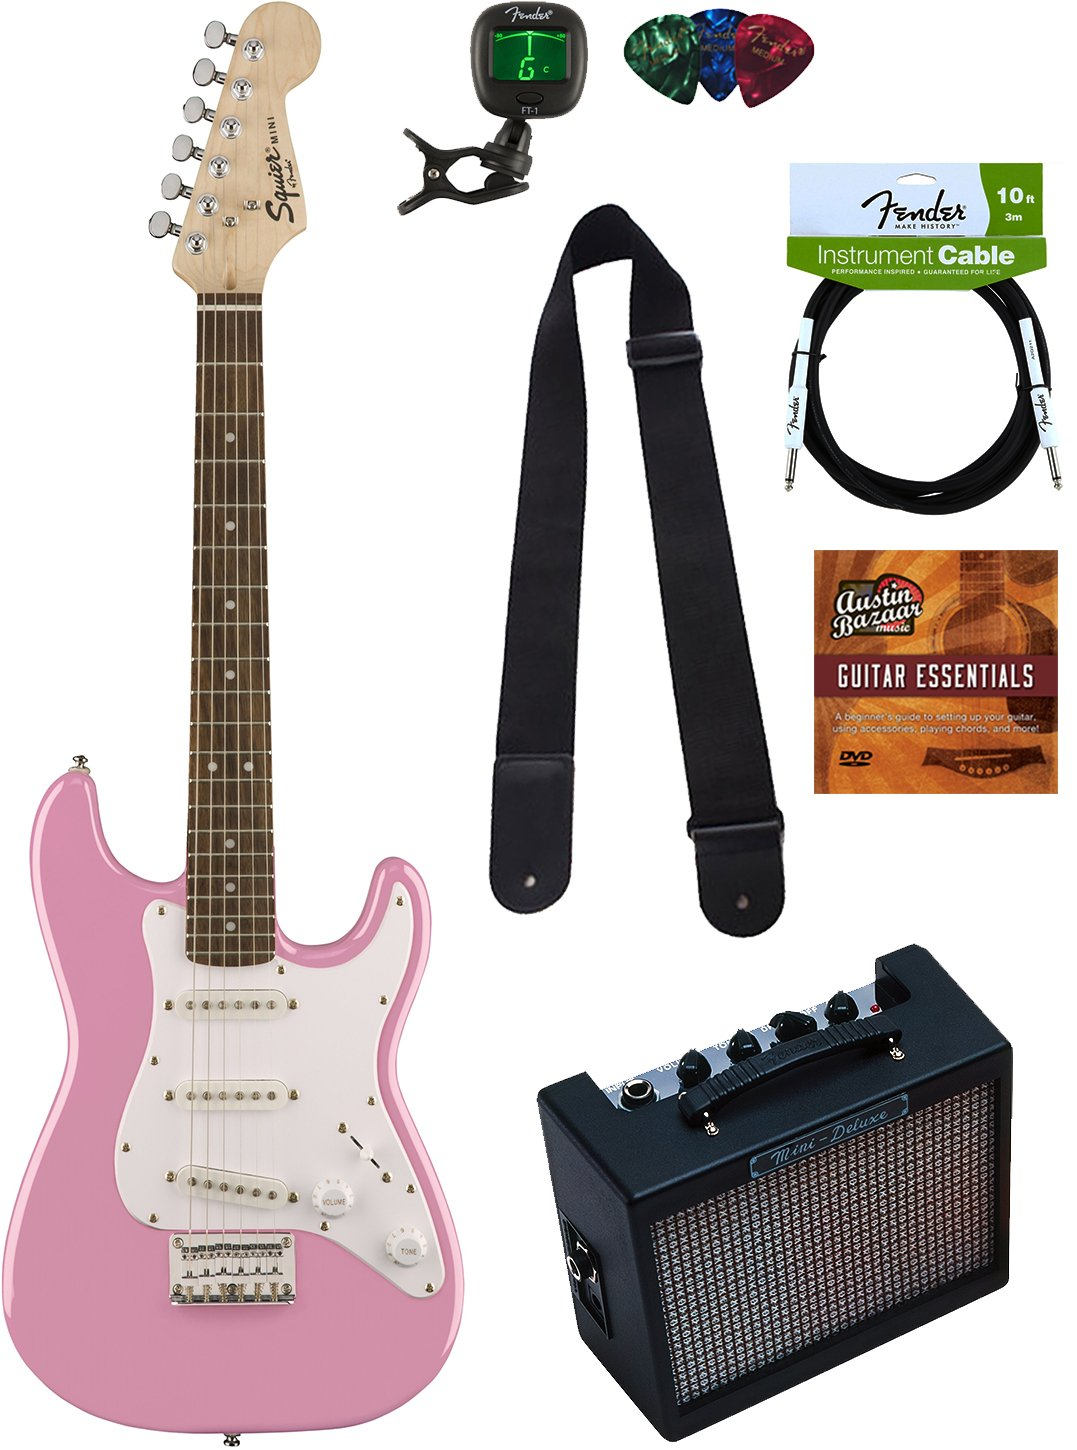 Fender Stratocaster Price >> Squier By Fender Mini Strat Electric Guitar Pink Bundle With Amplifier Instrument Cable Tuner Strap Picks Austin Bazaar Instructional Dvd And